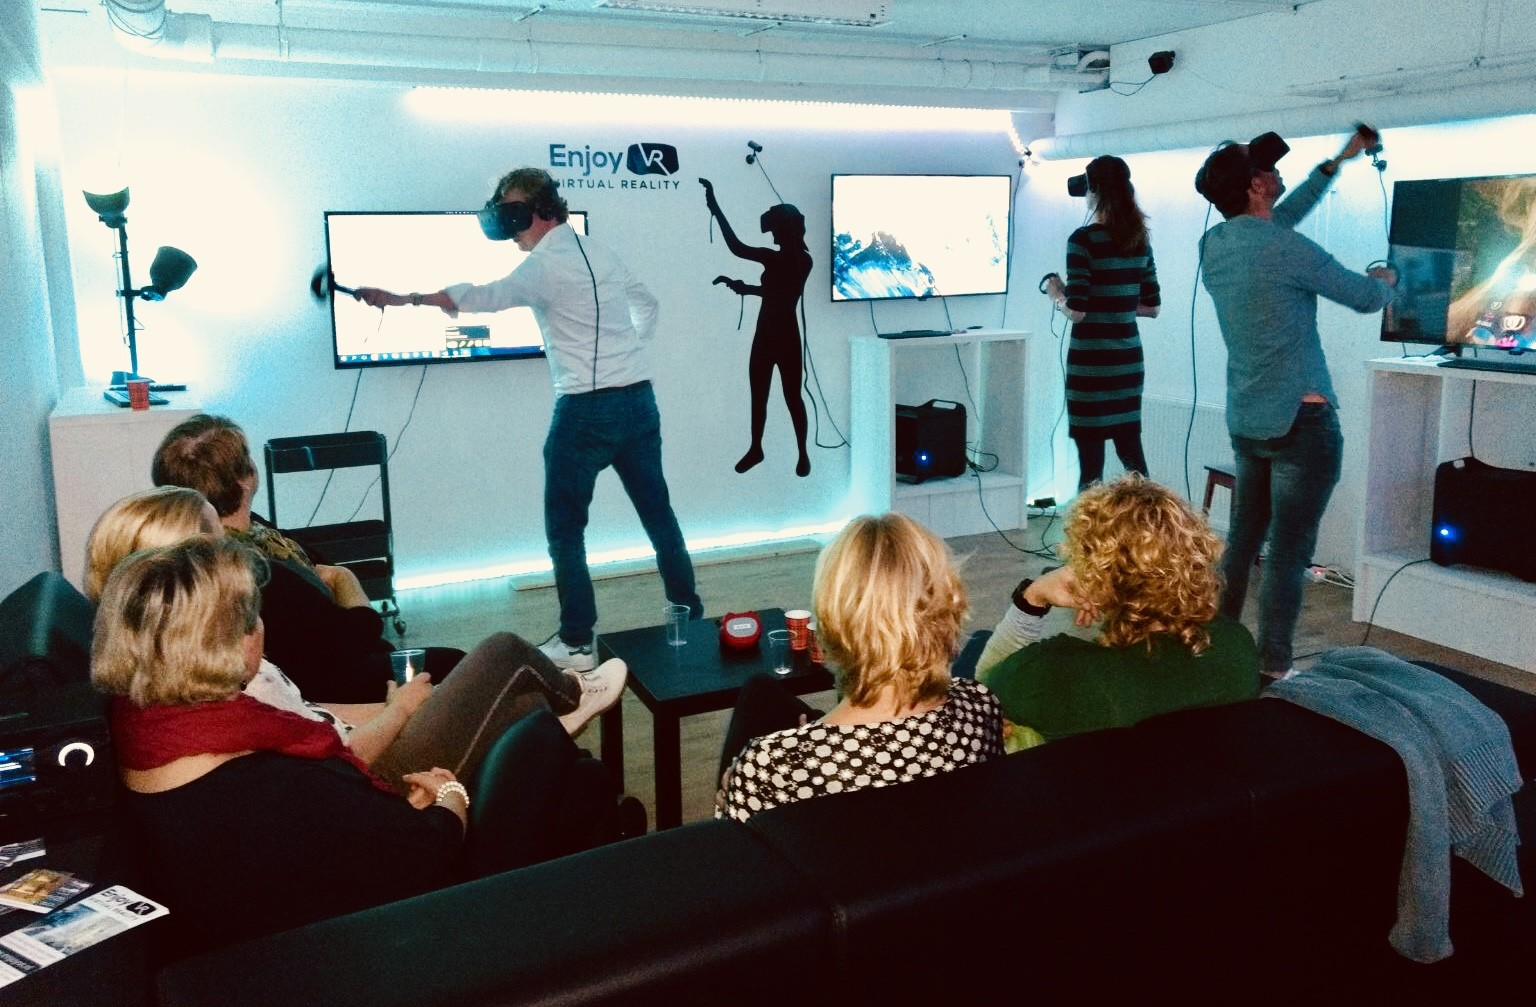 Teamuitje met Virtual Reality in Nijmegen